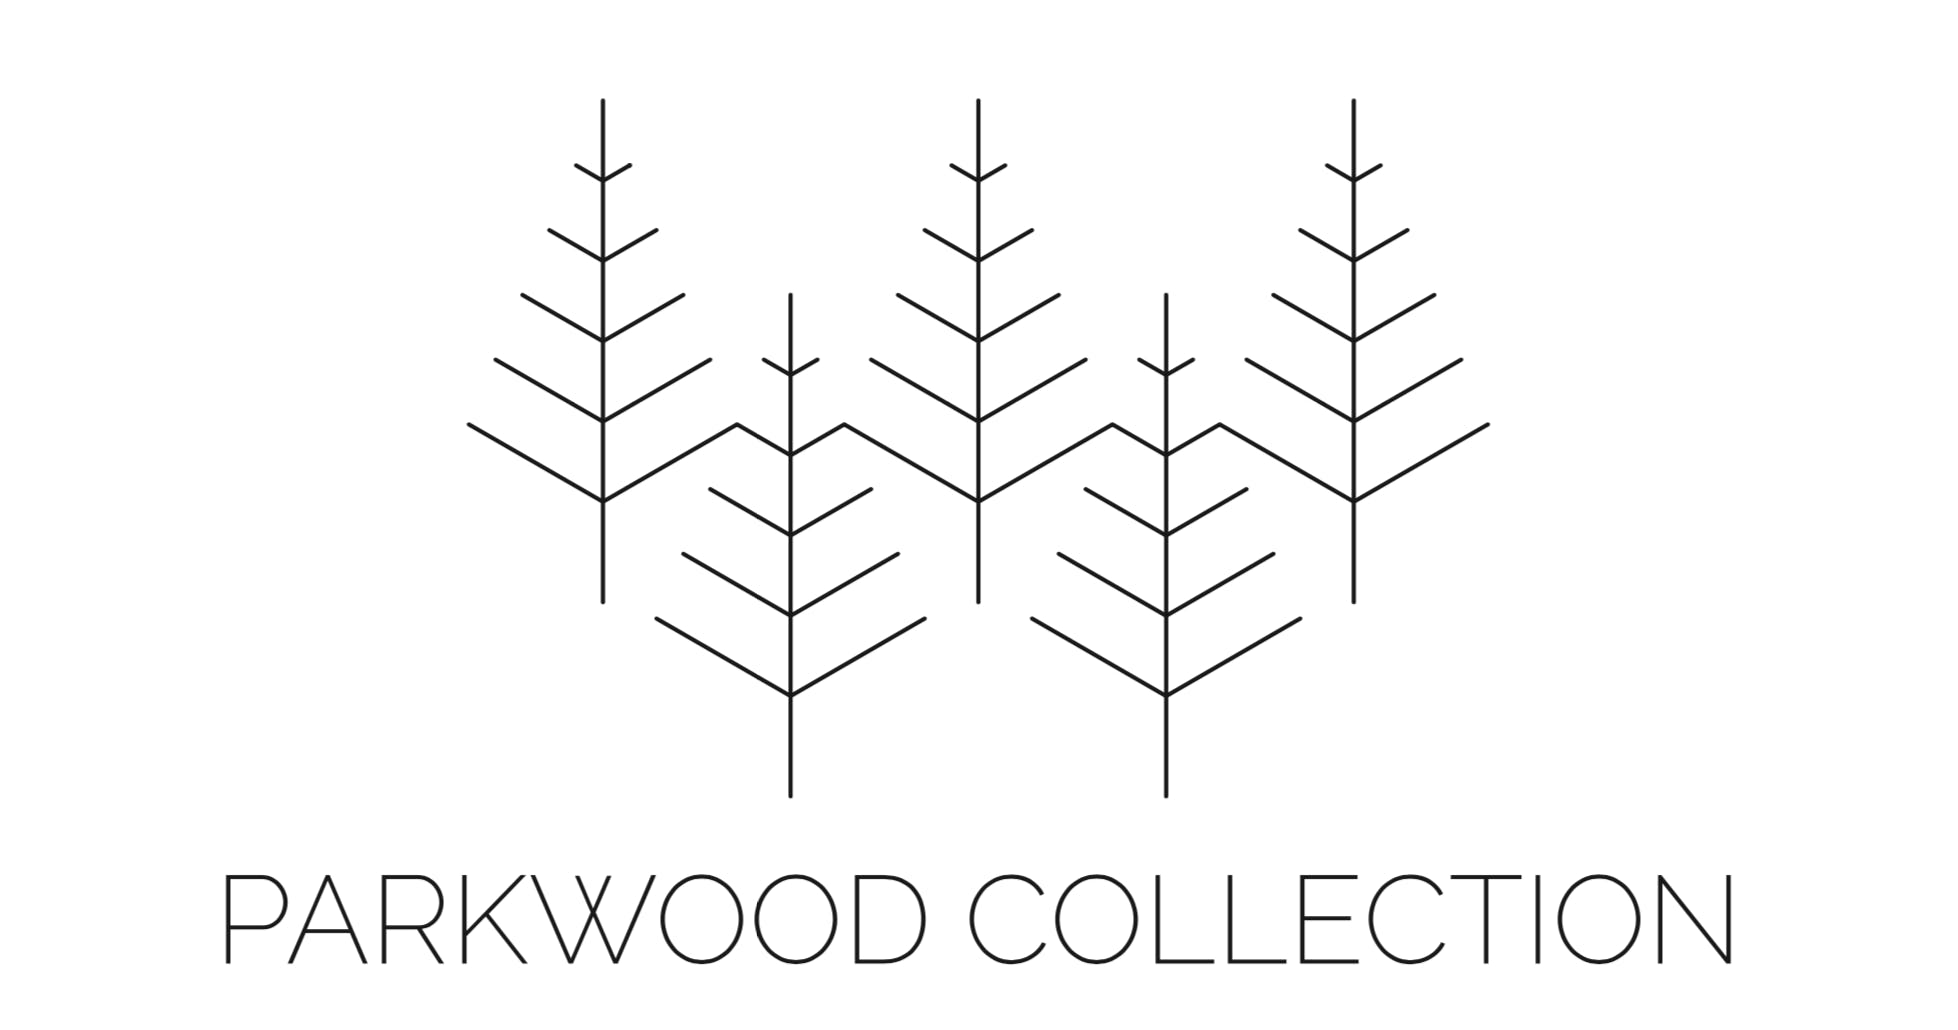 Parkwood Collection logo